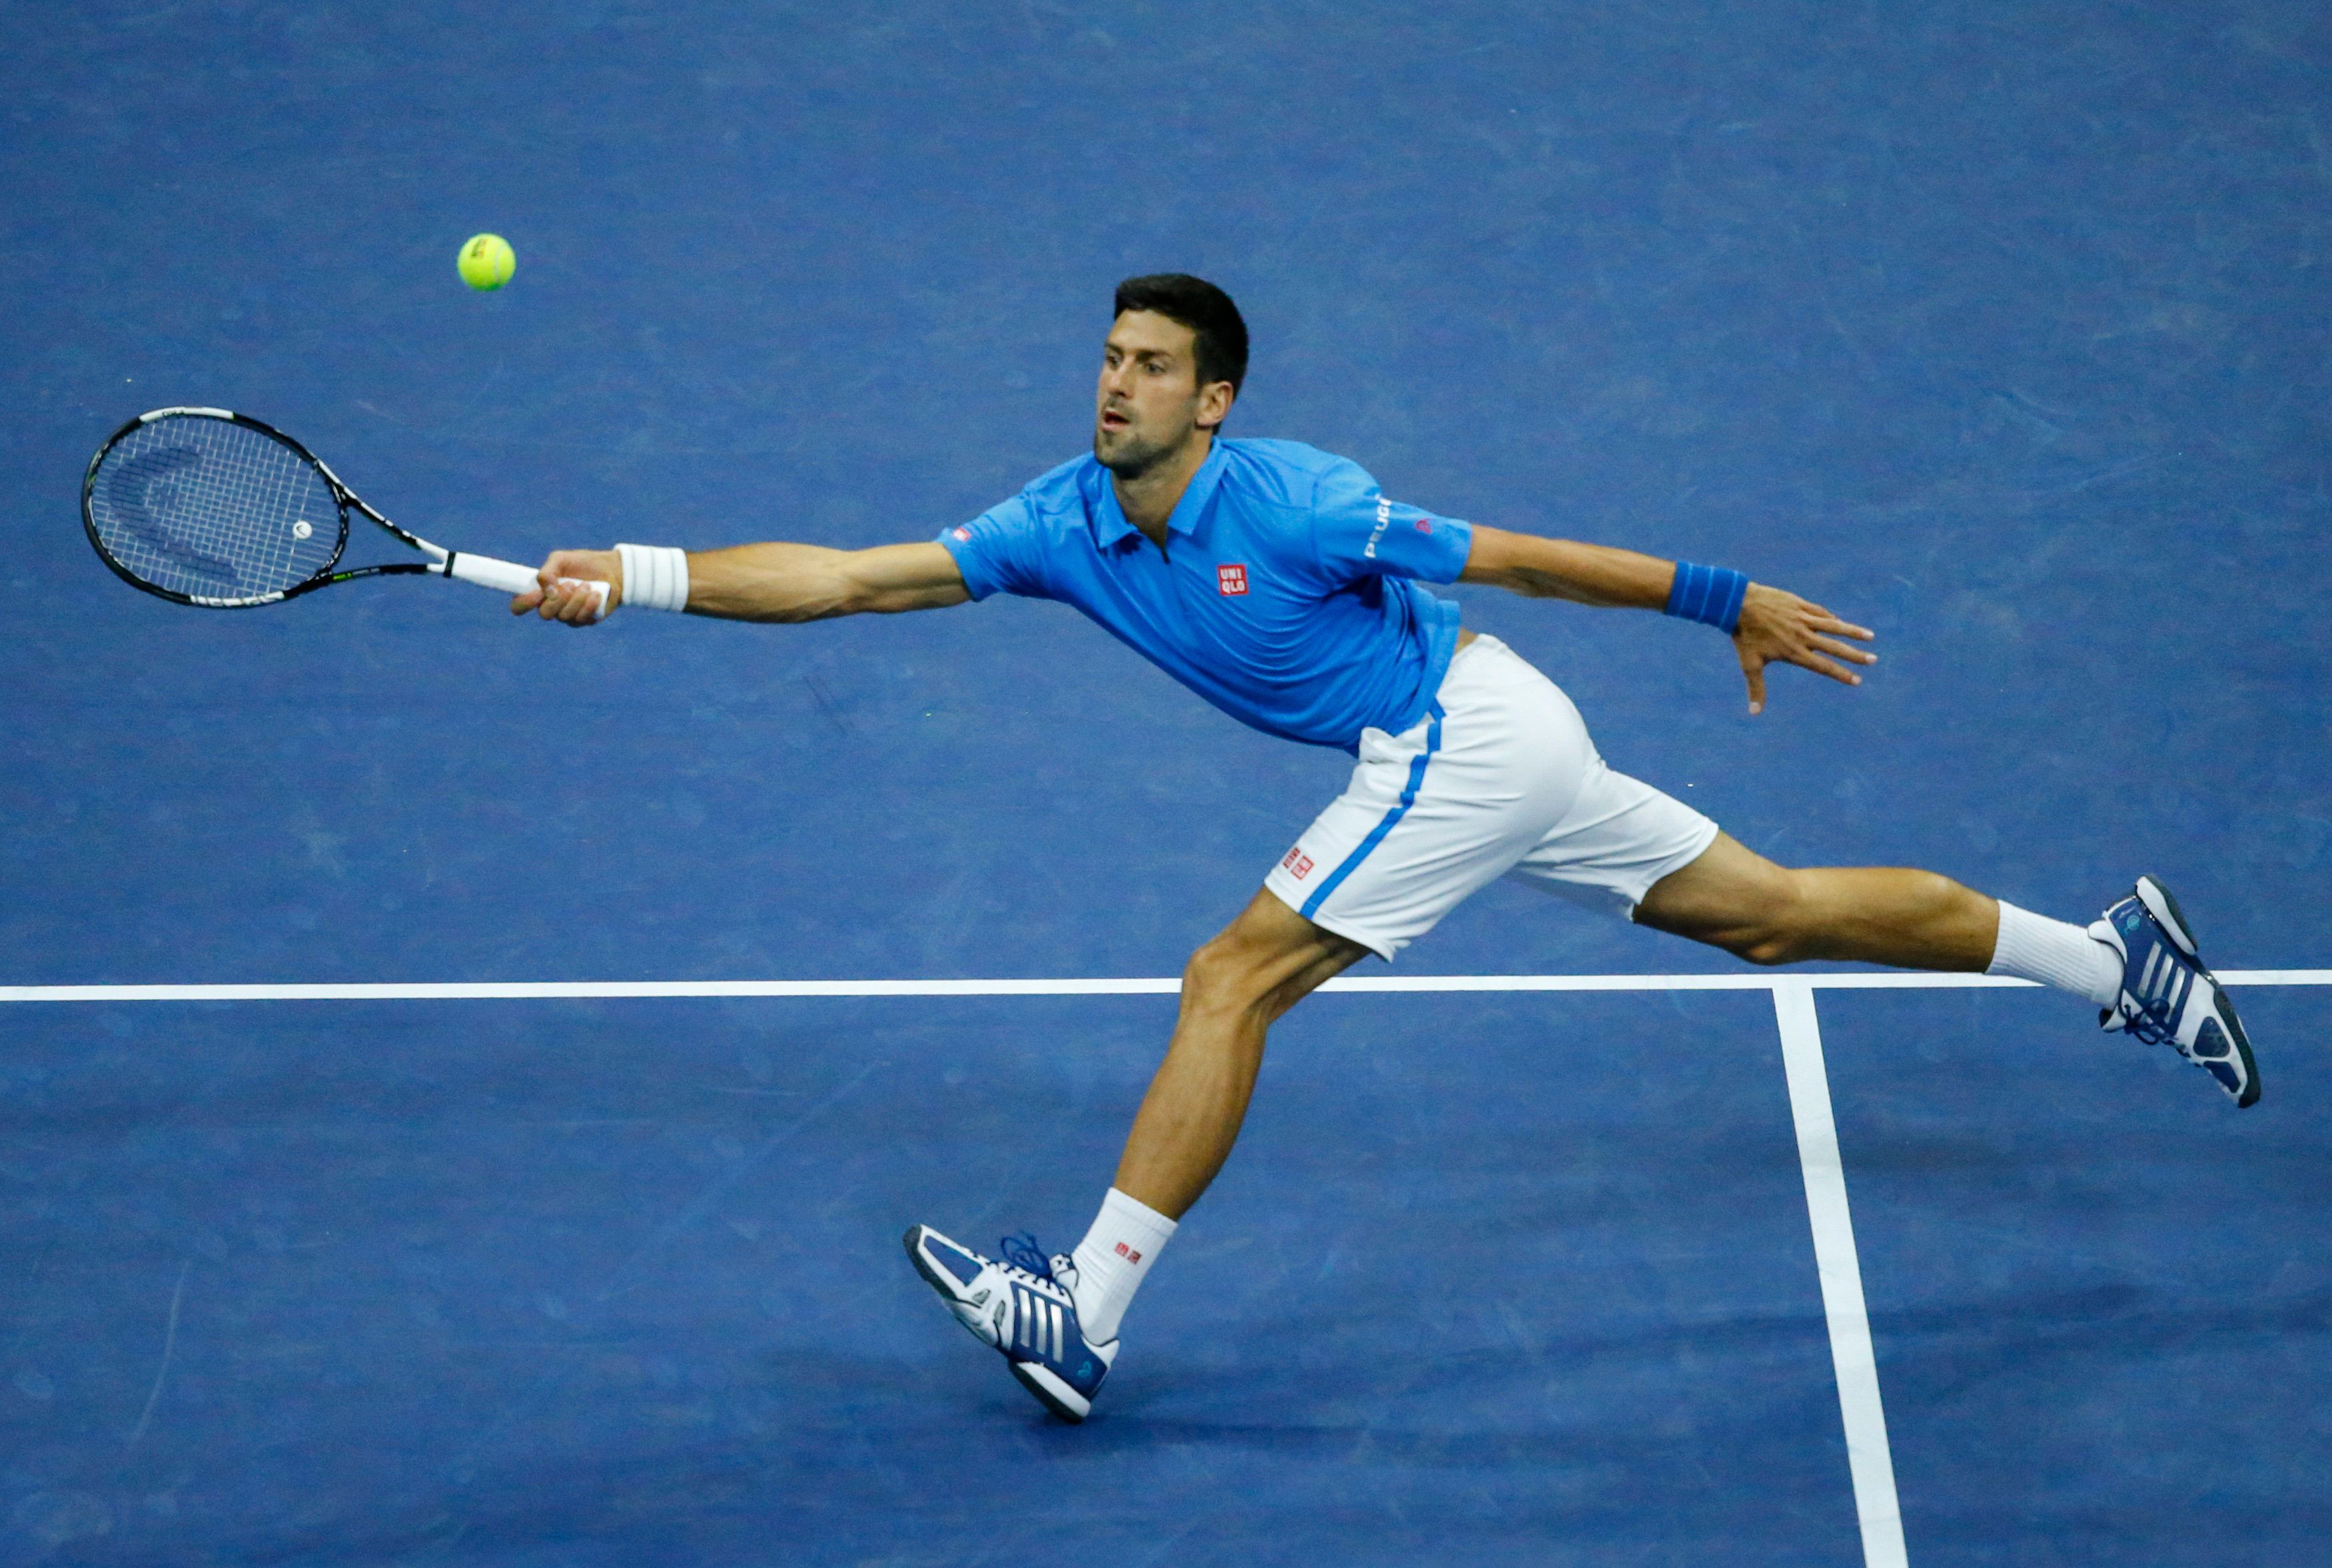 Novak Djokovic of Serbia hits a return against Jo-Wilfried Tsonga of France during their 2016 US Open Men's Singles match at the USTA Billie Jean King National Tennis Center in New York on September 6, 2016. / AFP / KENA BETANCUR        (Photo credit should read KENA BETANCUR/AFP/Getty Images)